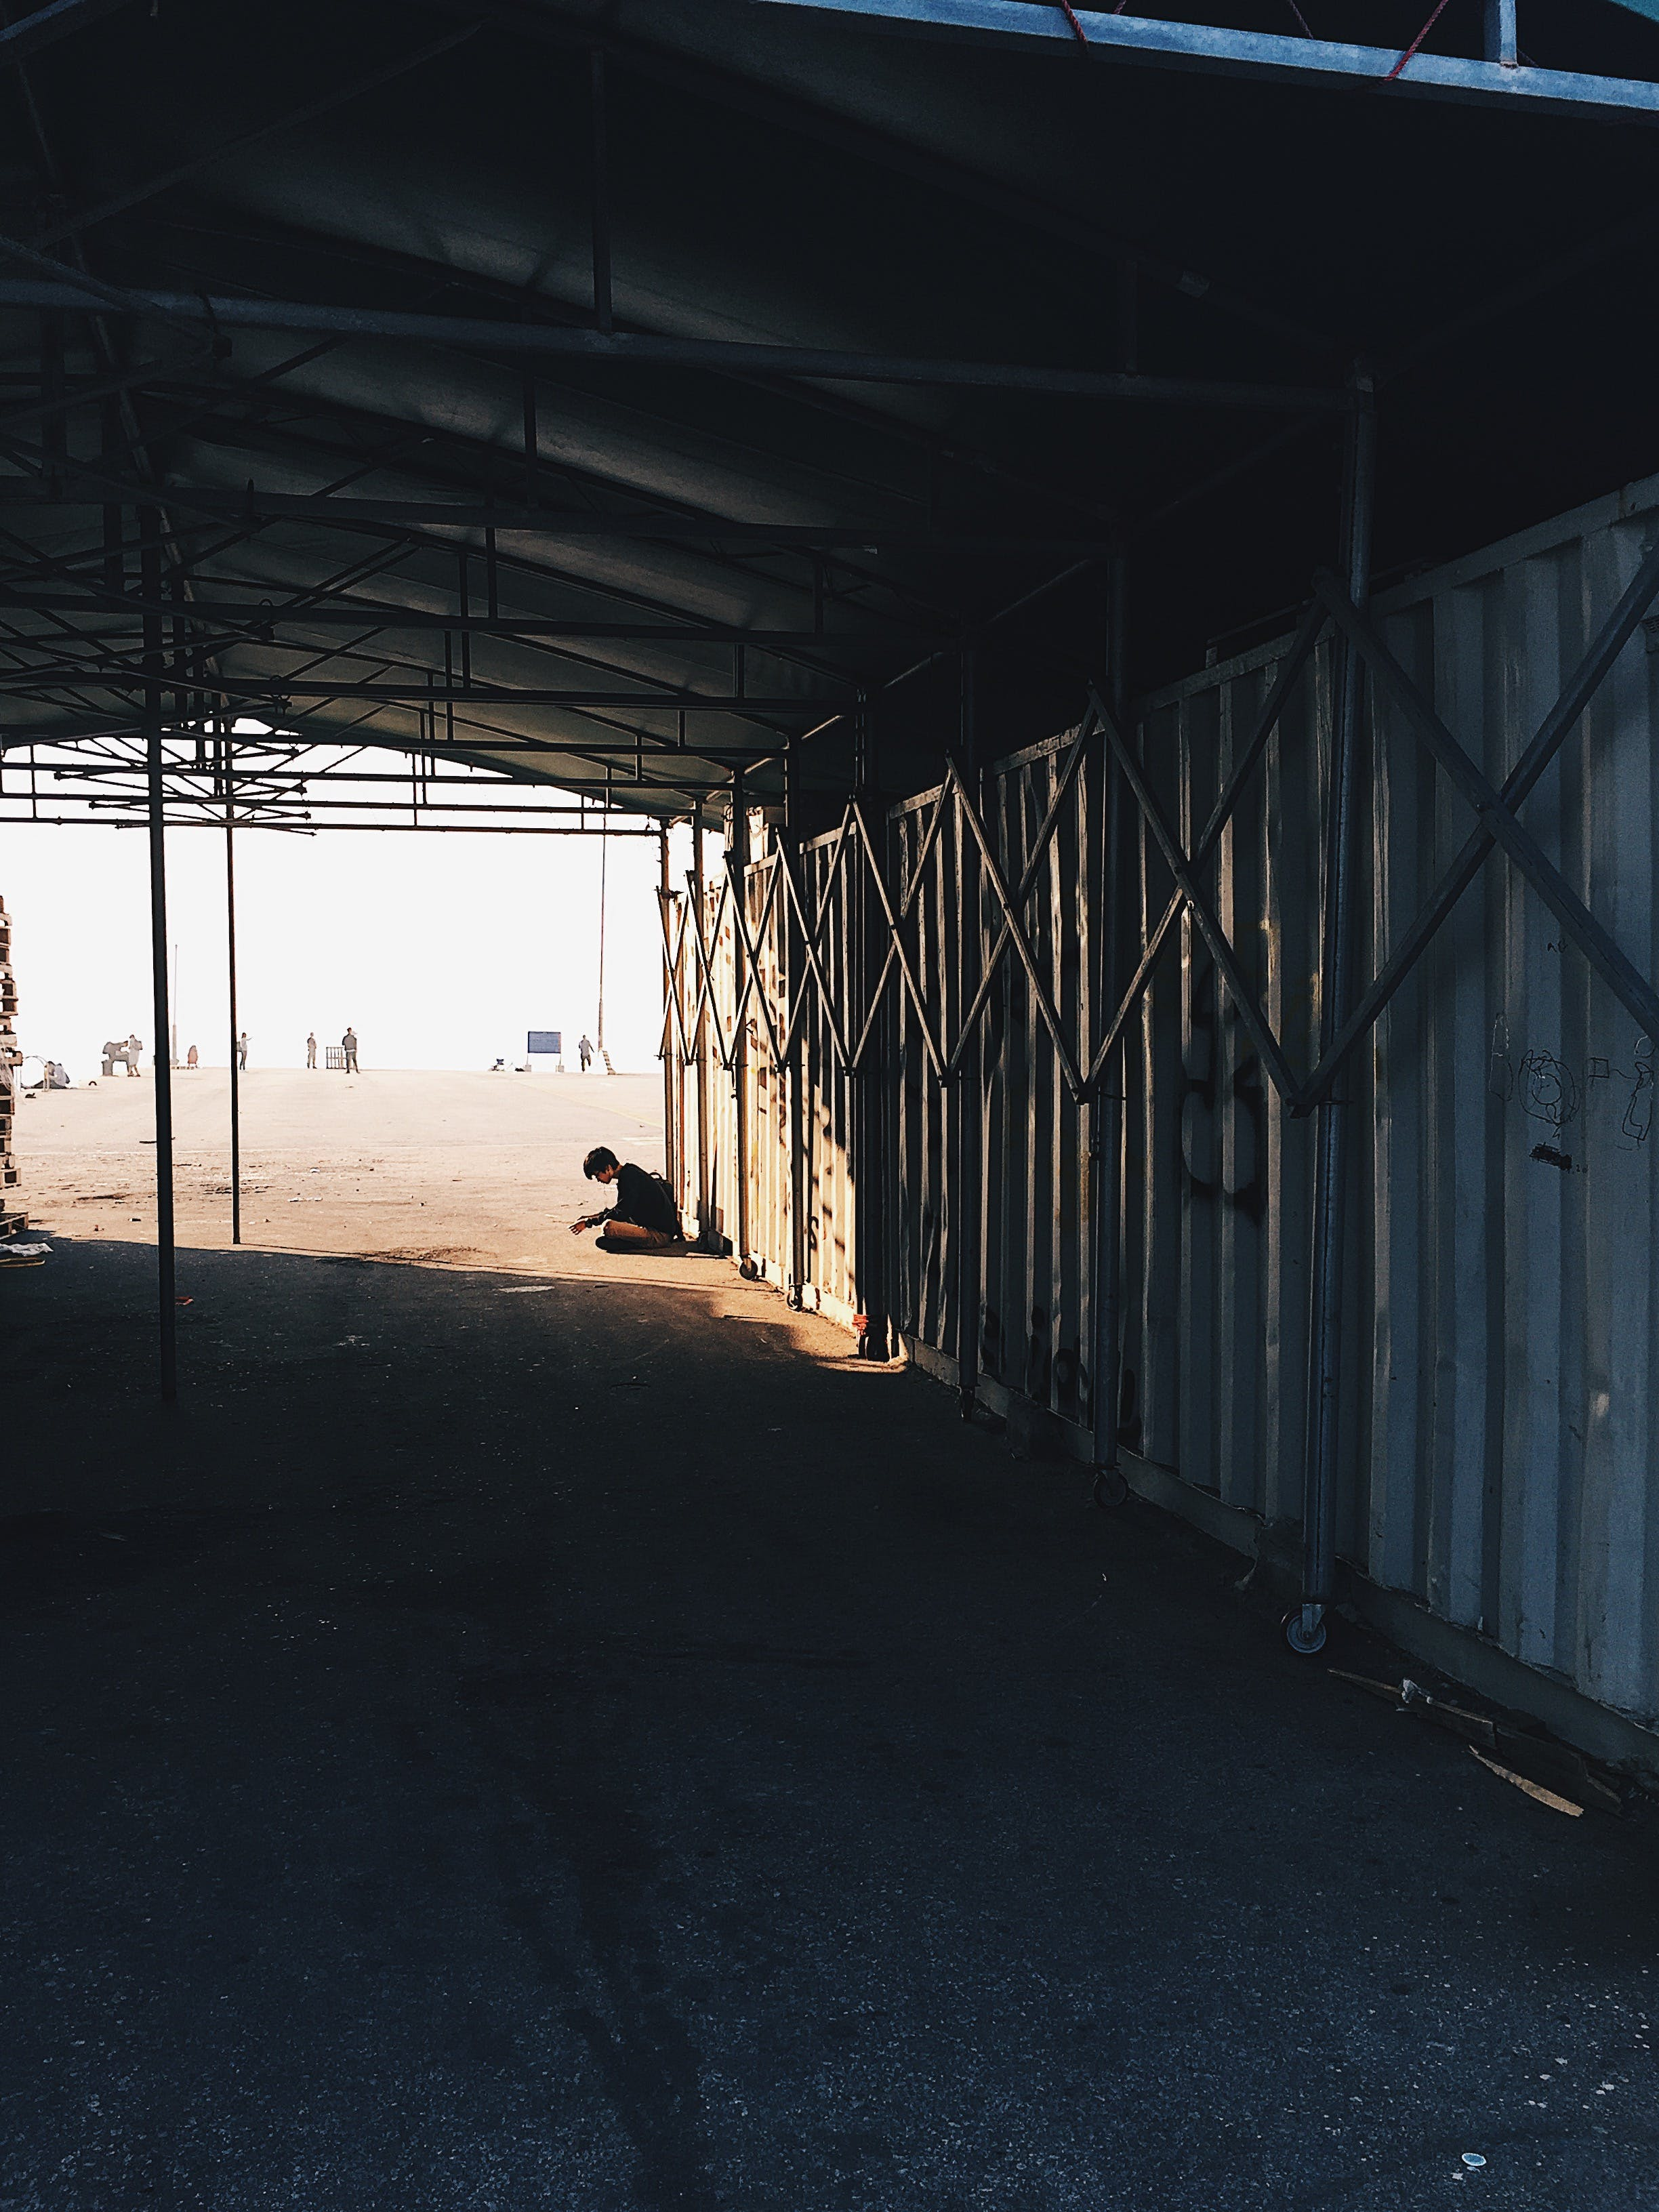 Free stock photo of asian person, garage, gate, pier